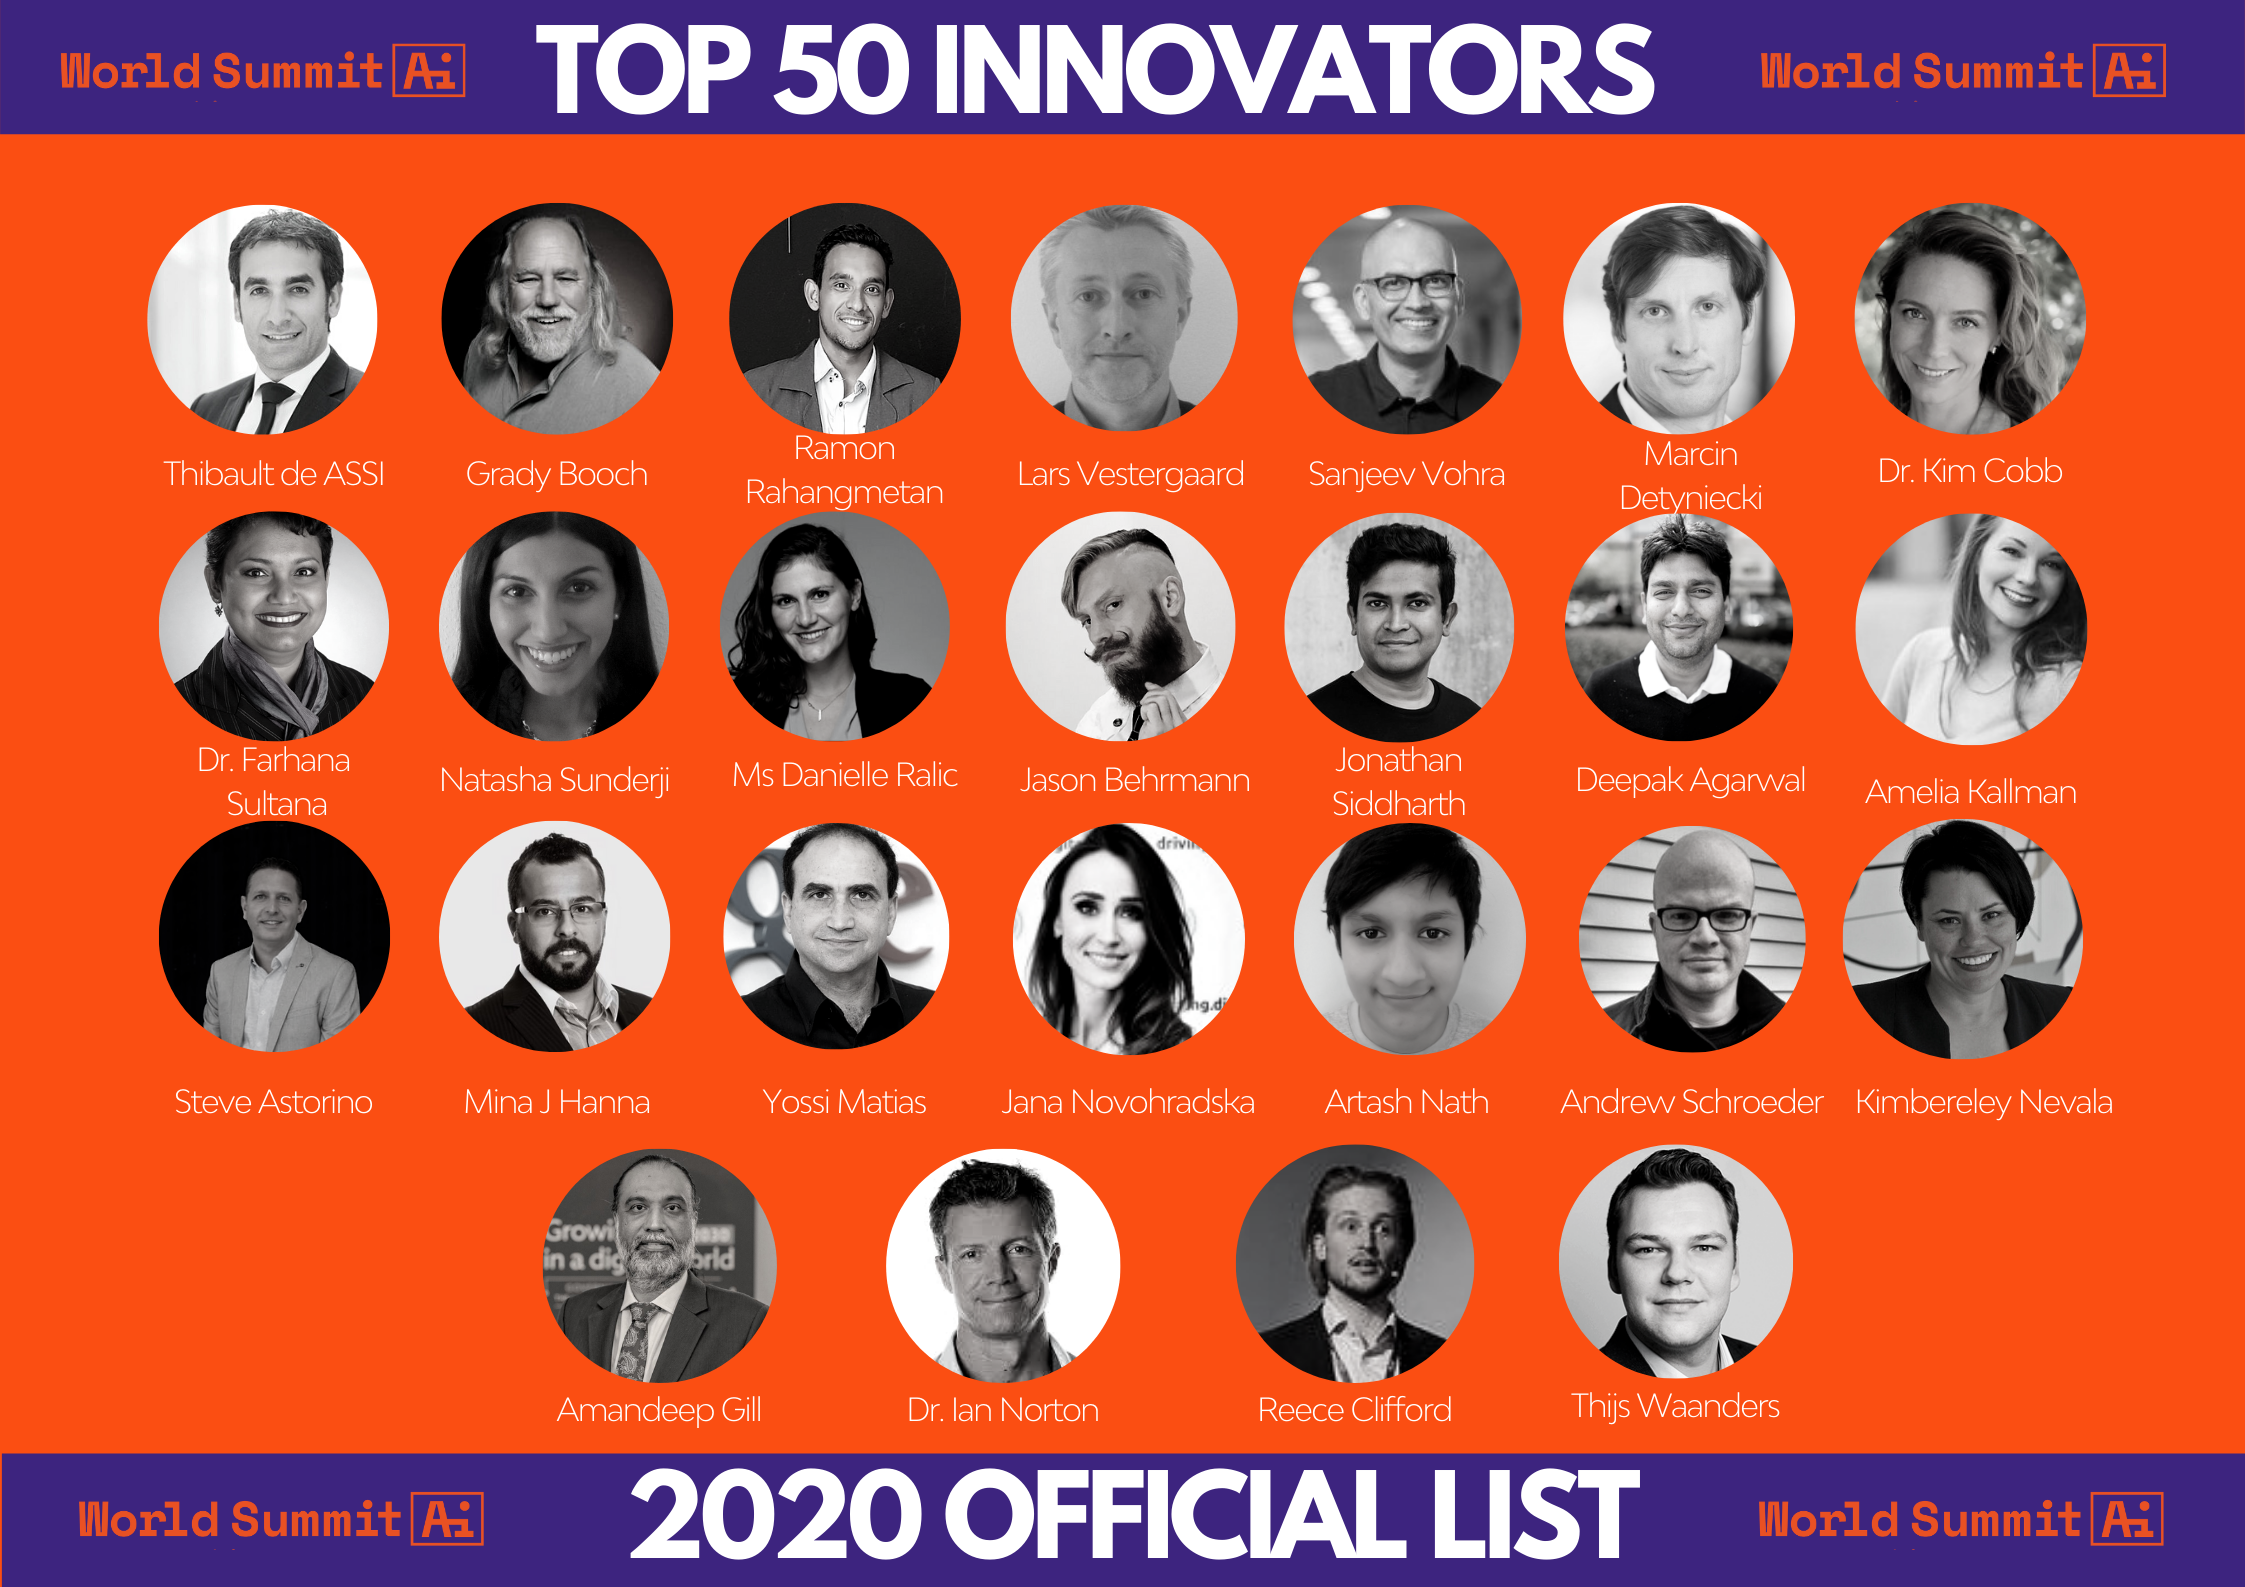 WSAI Top 50 Innovators - Part II